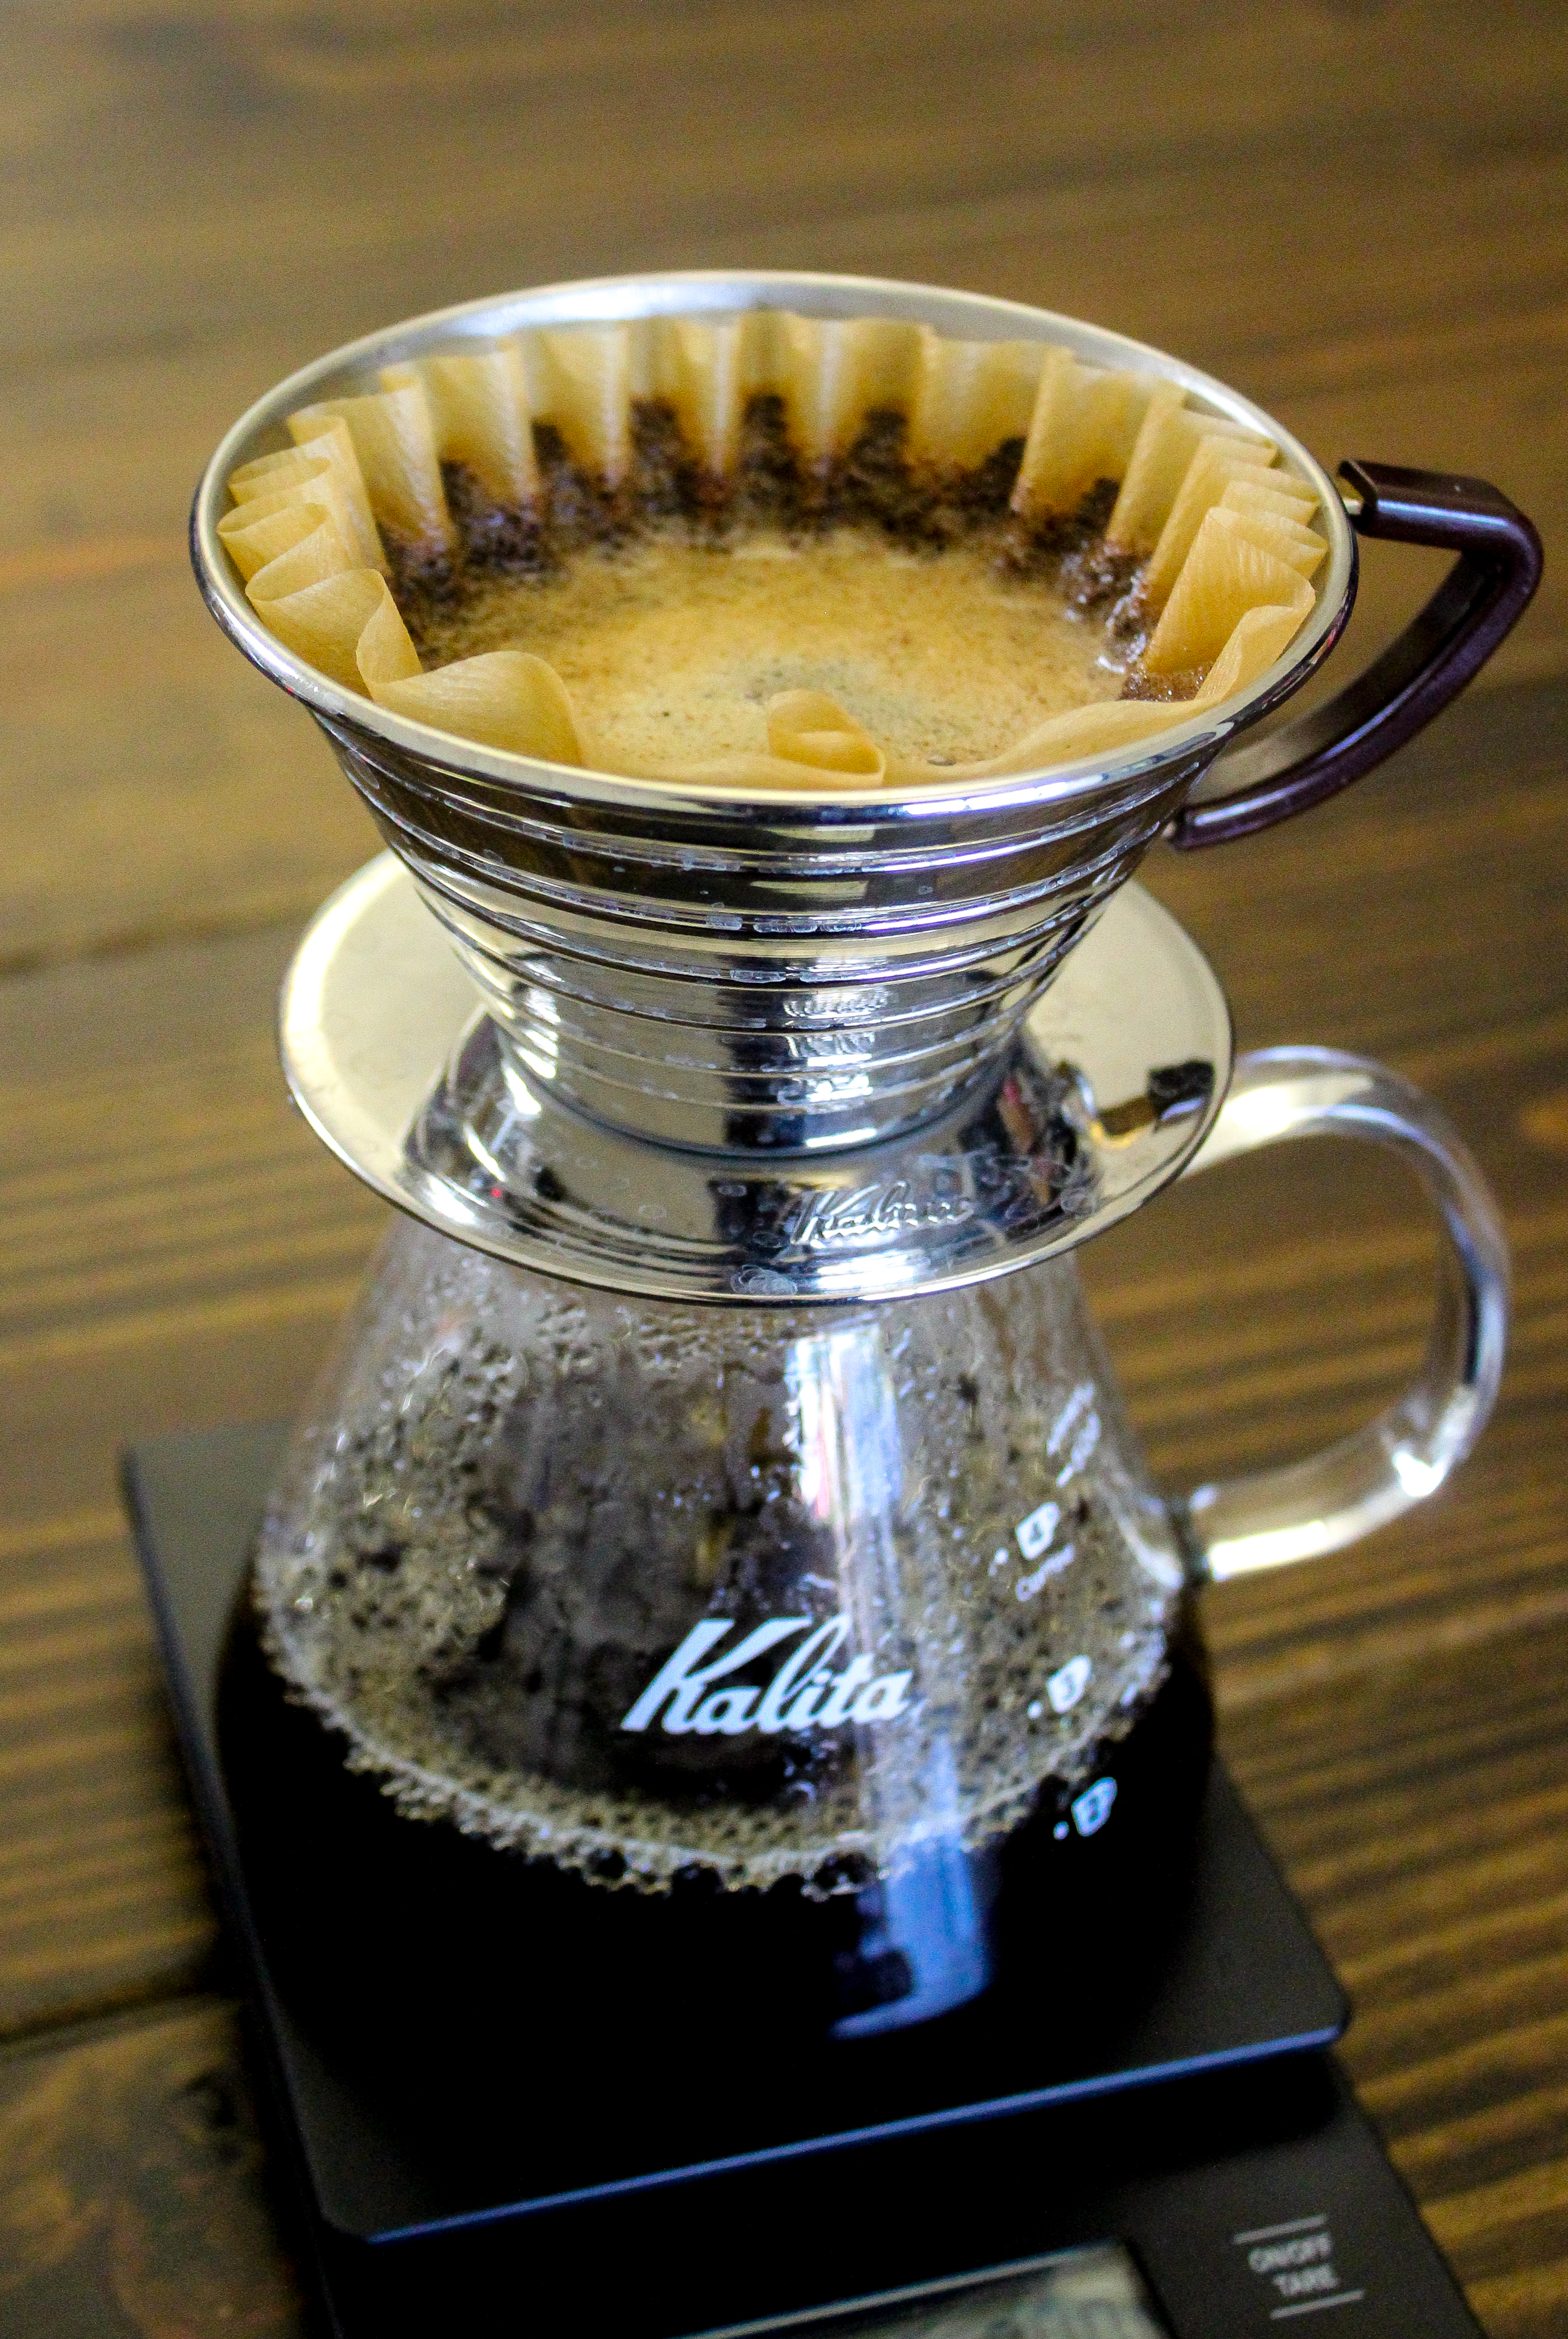 5. Continue to pour until the scale reads 340 g. Pour slowly circling out from the center of the coffee bed. Avoid the sides so that you do not pour directly on the filter. The entire brewing process should take about 2.5 to 3.5 minutes.